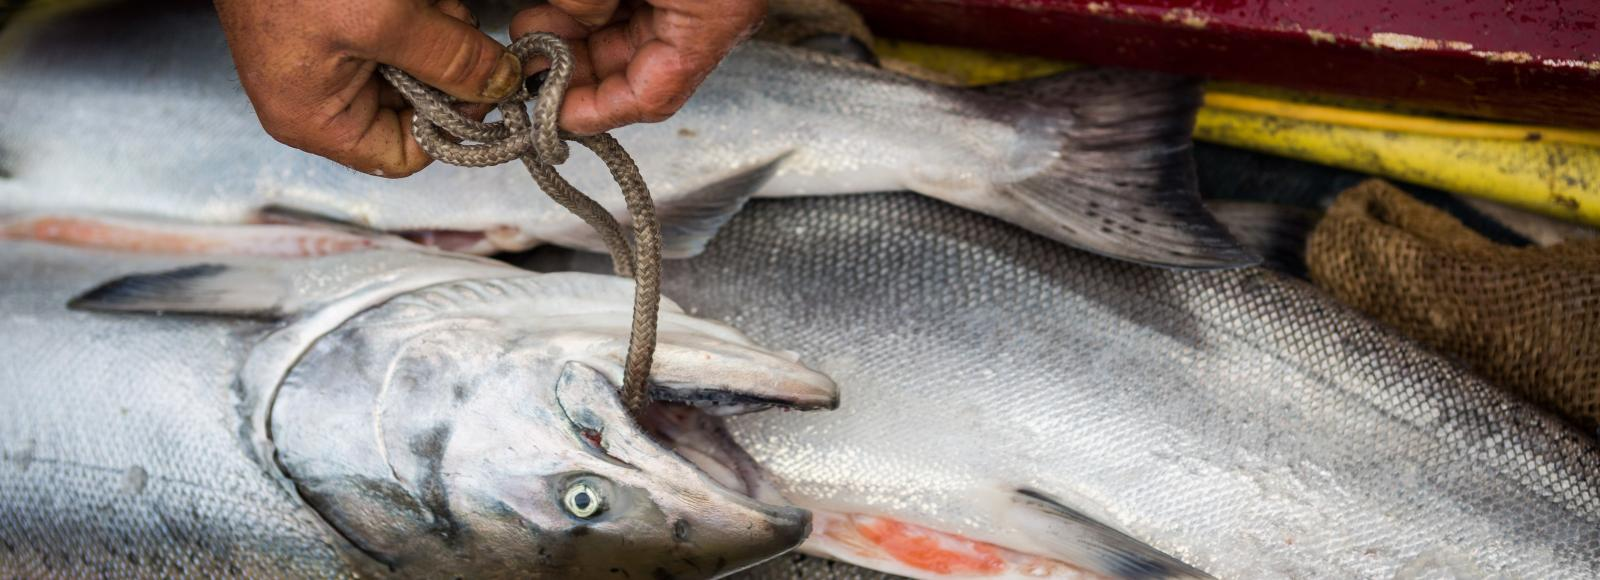 A fisherman's hands ties a line through a salmon's moutn